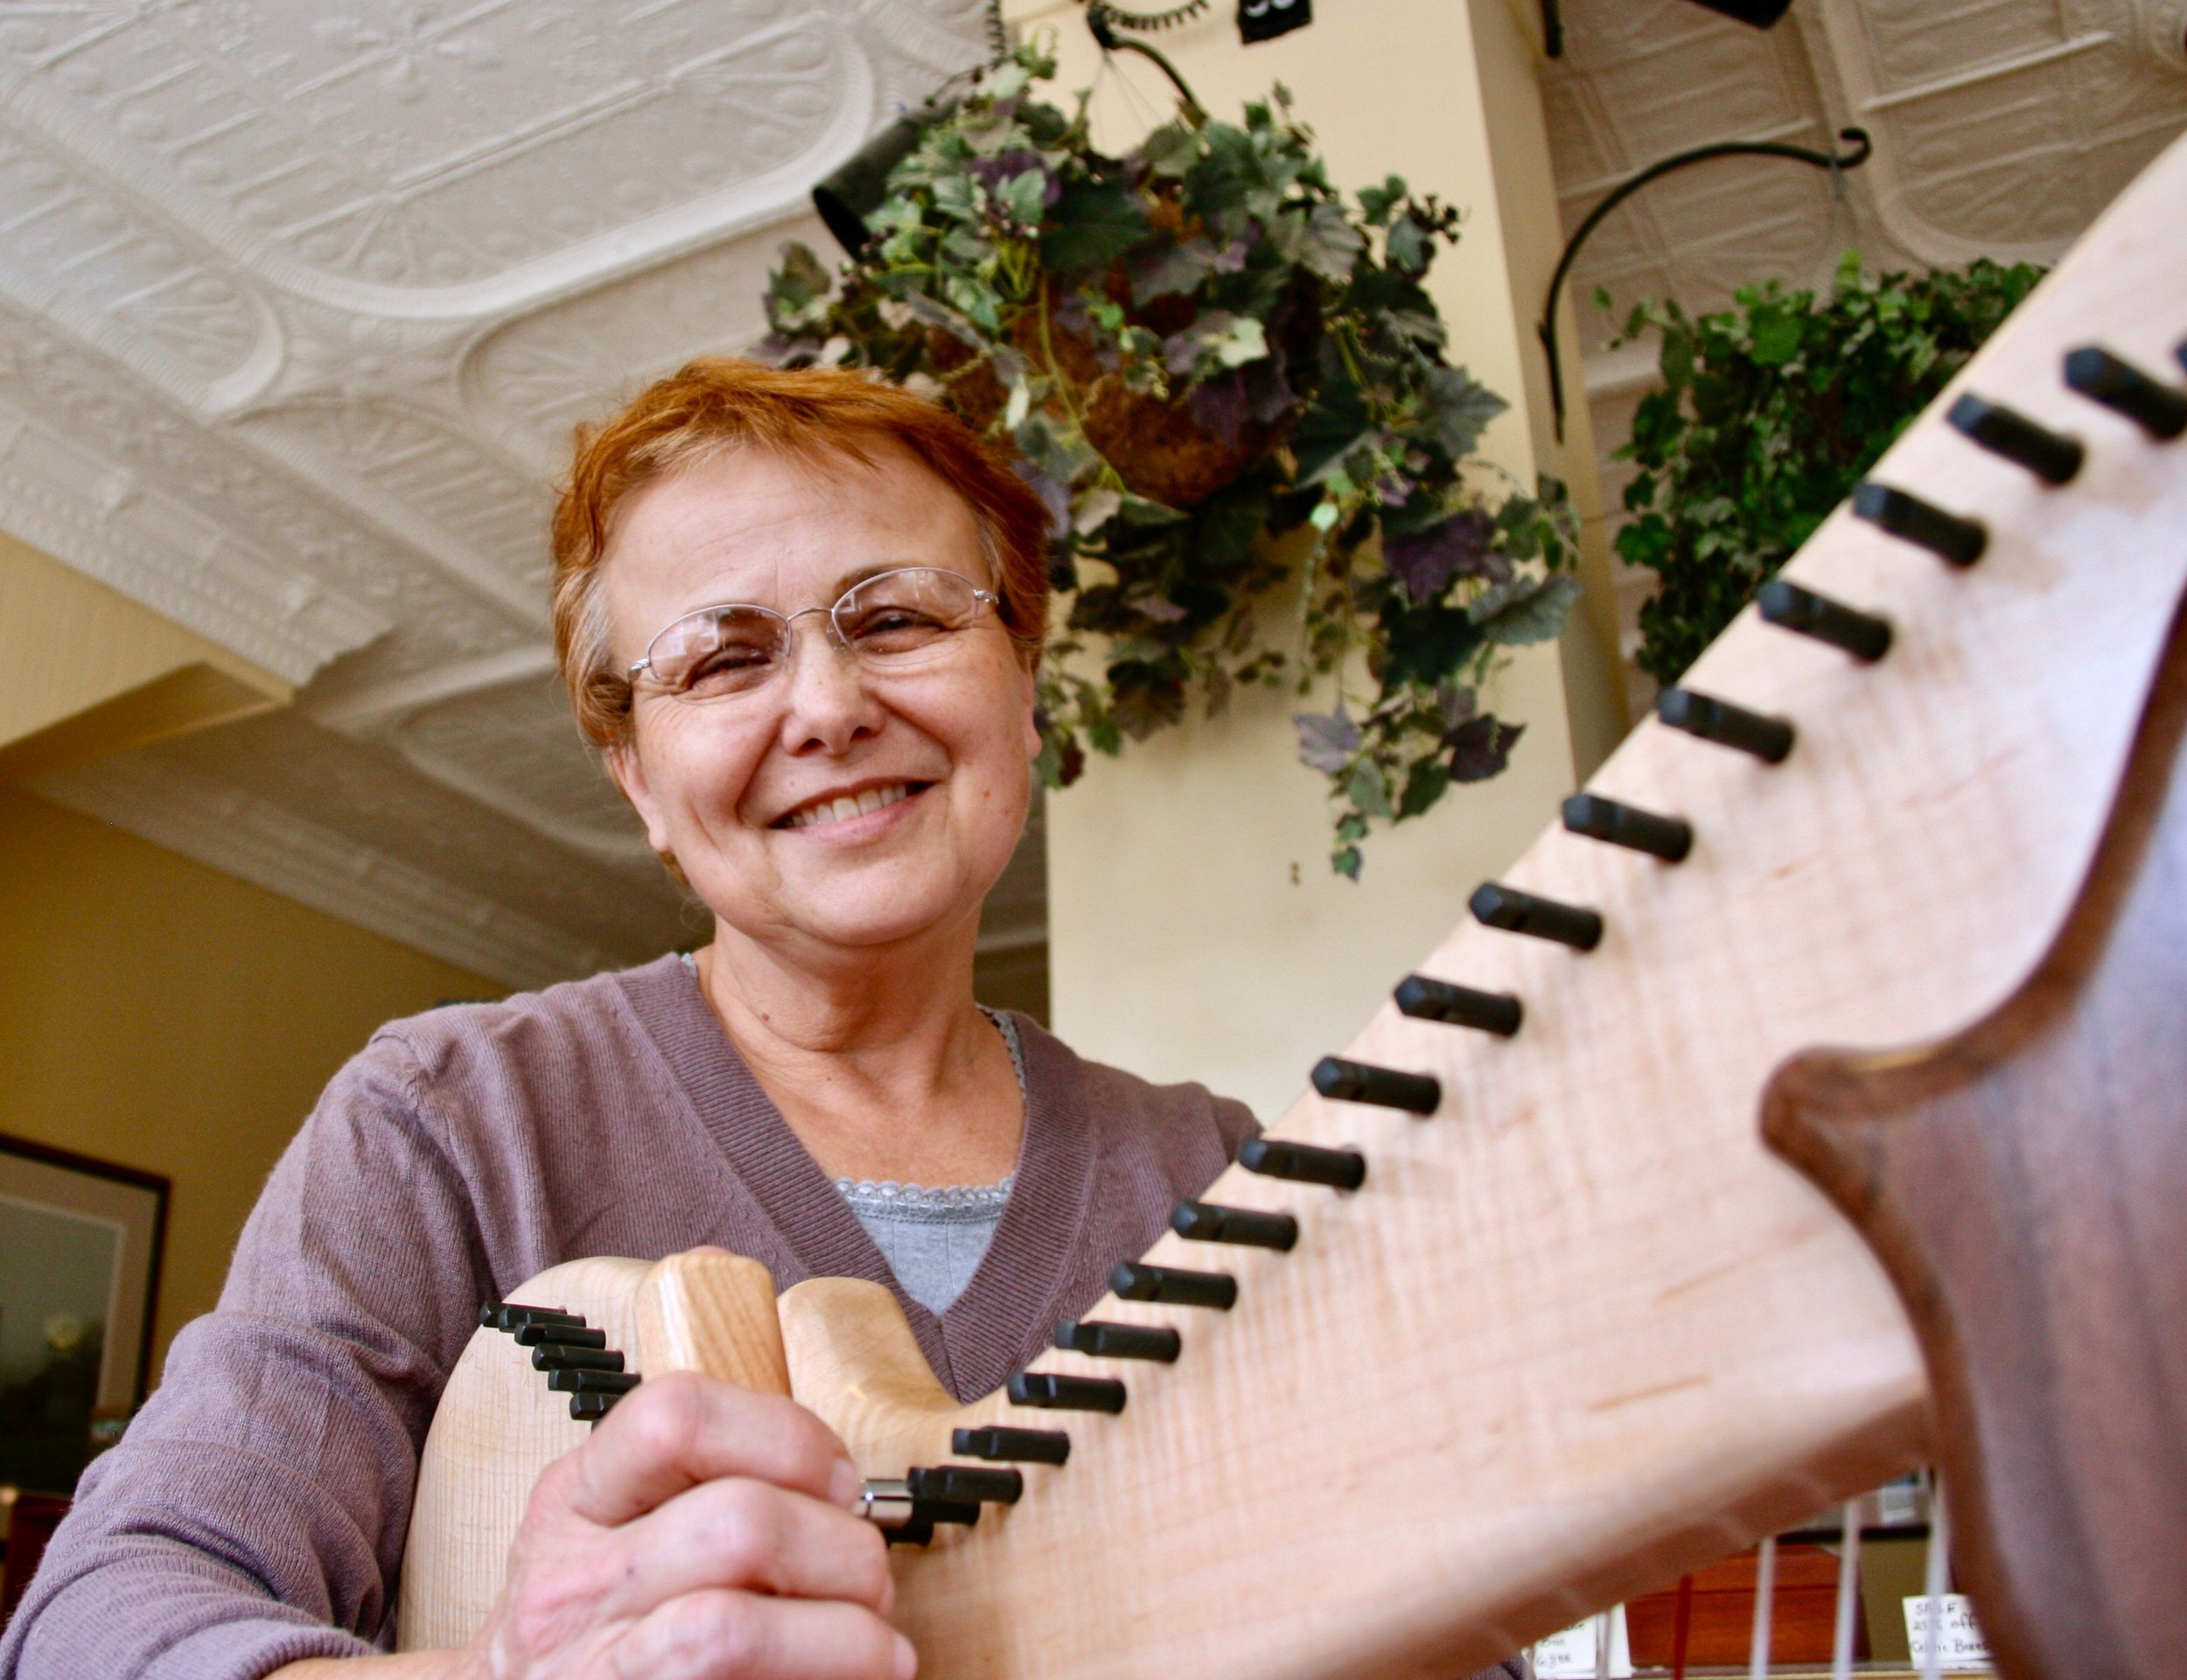 Joann Irwin tuning a harp (again) before she packs it to ship out.